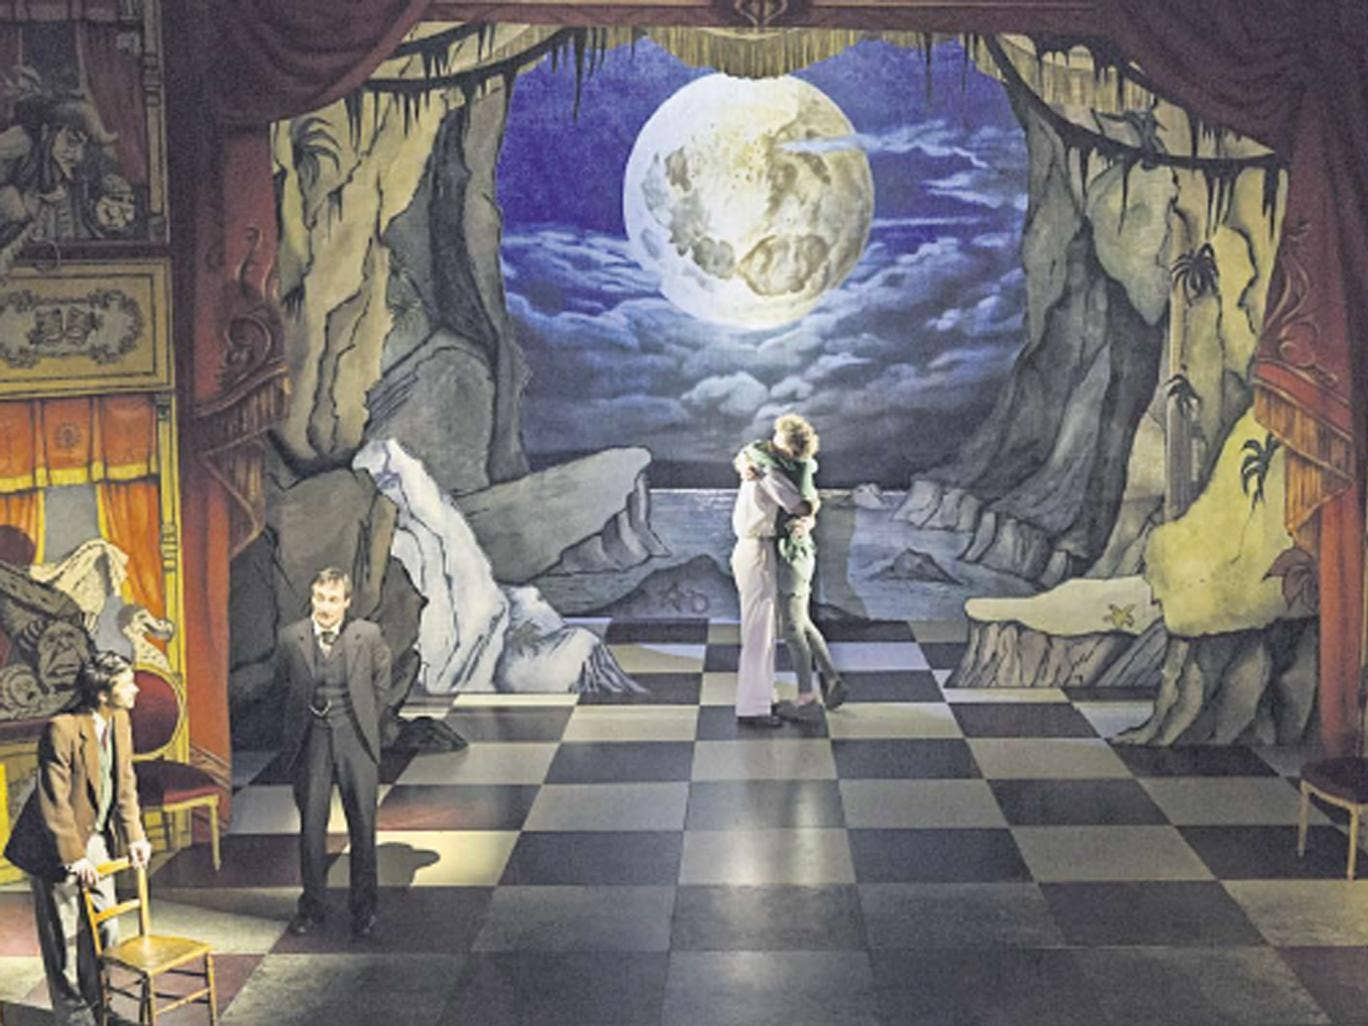 Christopher Oram's spectacular set enriches Peter and Alice